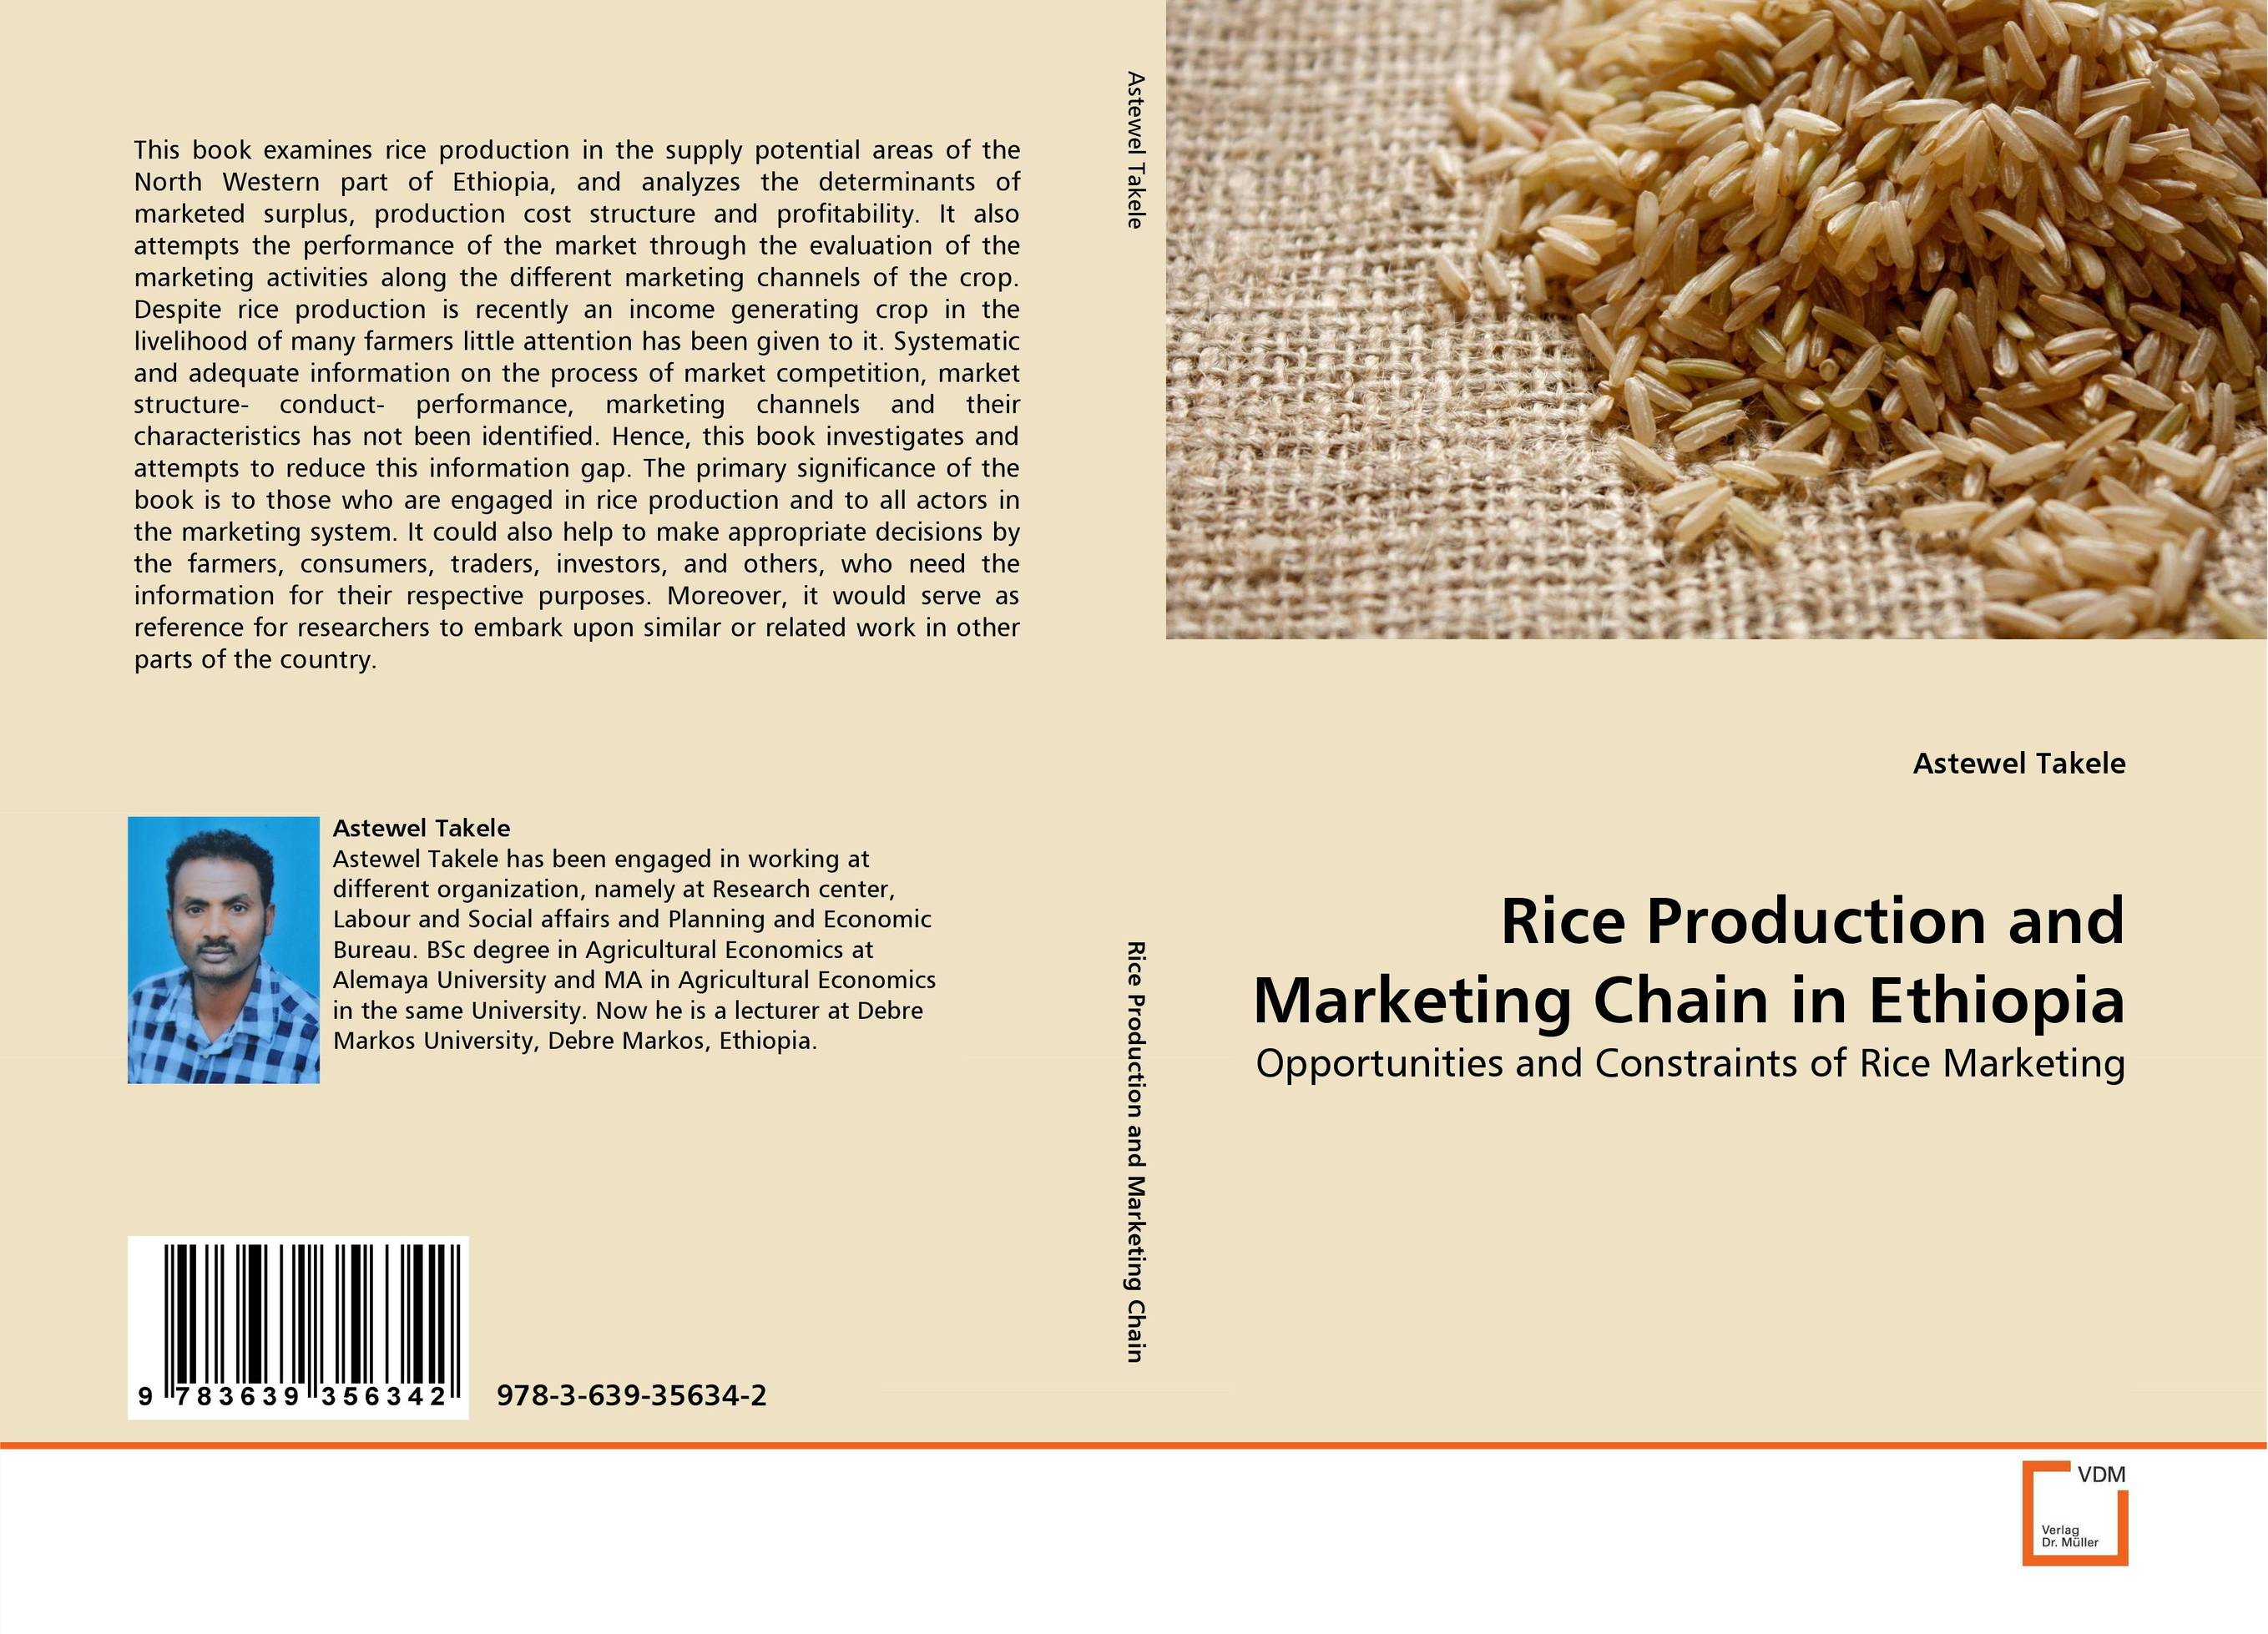 Rice Production and Marketing Chain in Ethiopia adding value to the citrus pulp by enzyme biotechnology production